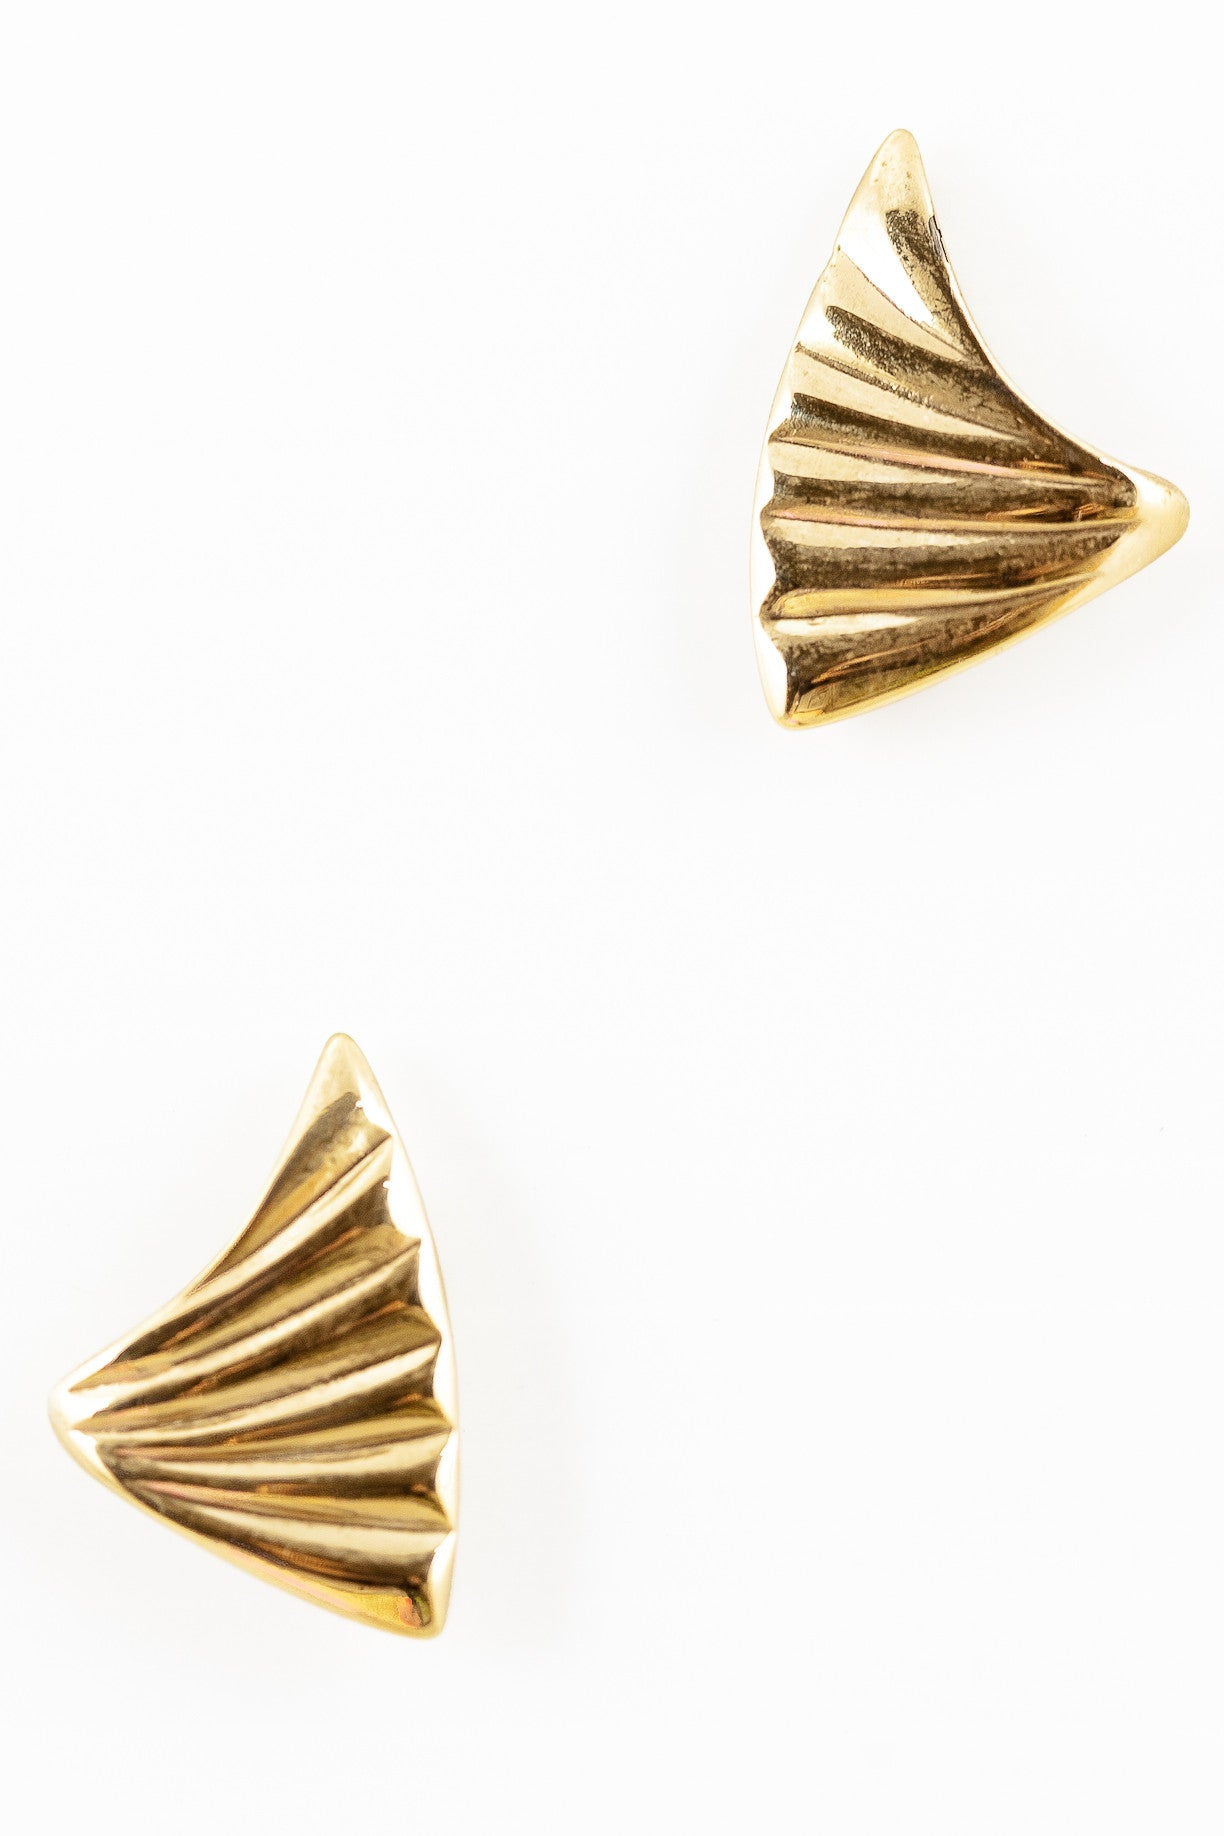 70's__Vintage__Pointed Triangle Earrings